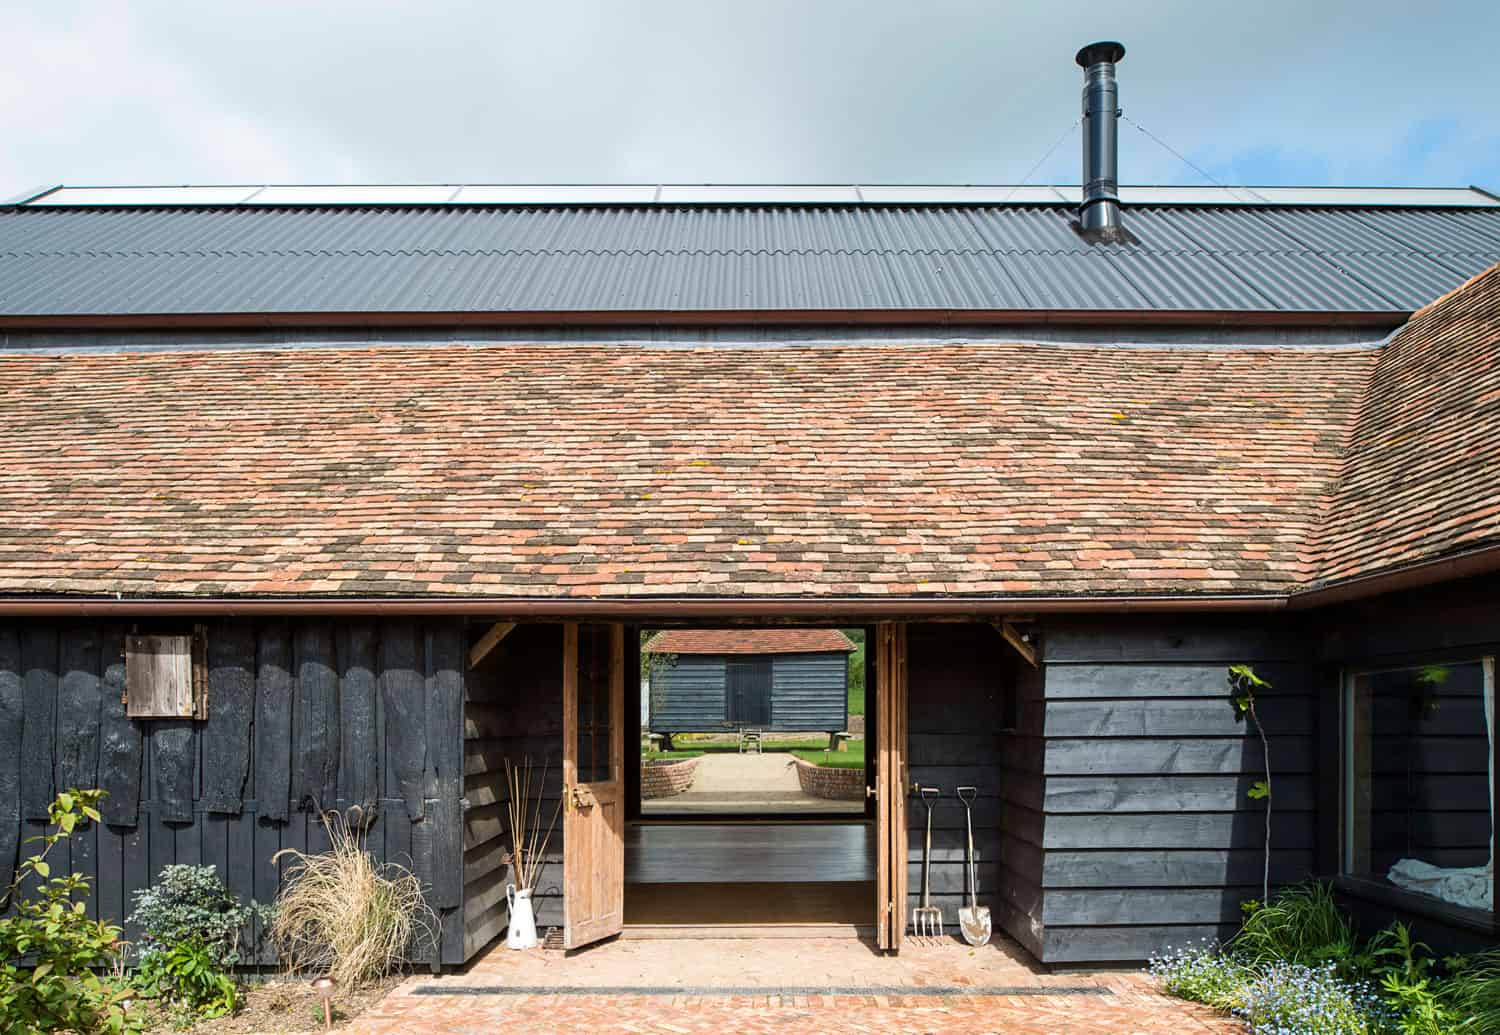 Derelict Barn Conversion Into Modern Home